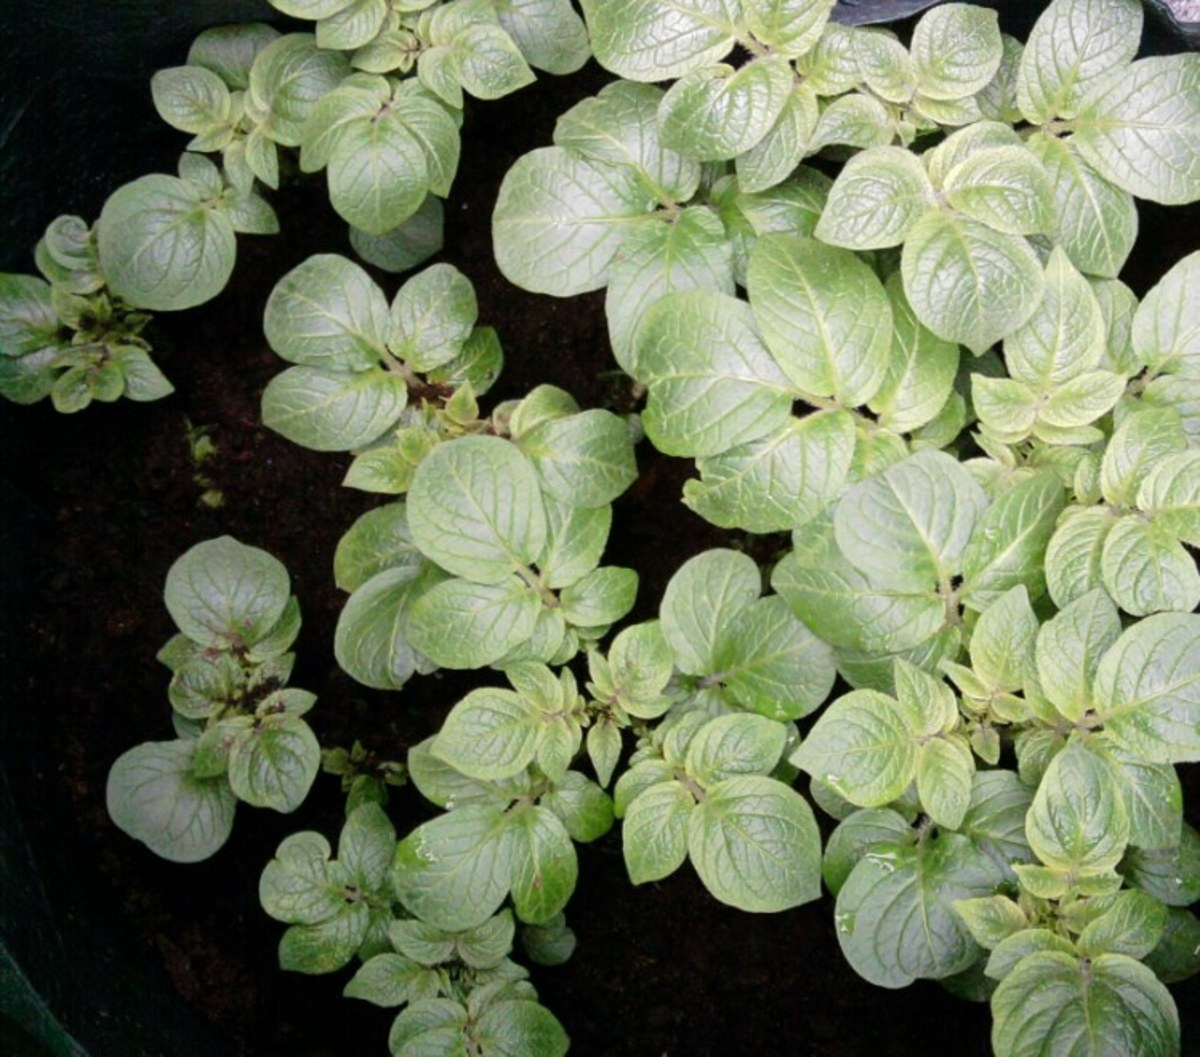 By week three you should see lots of potato stalks emerging from your grow bag.